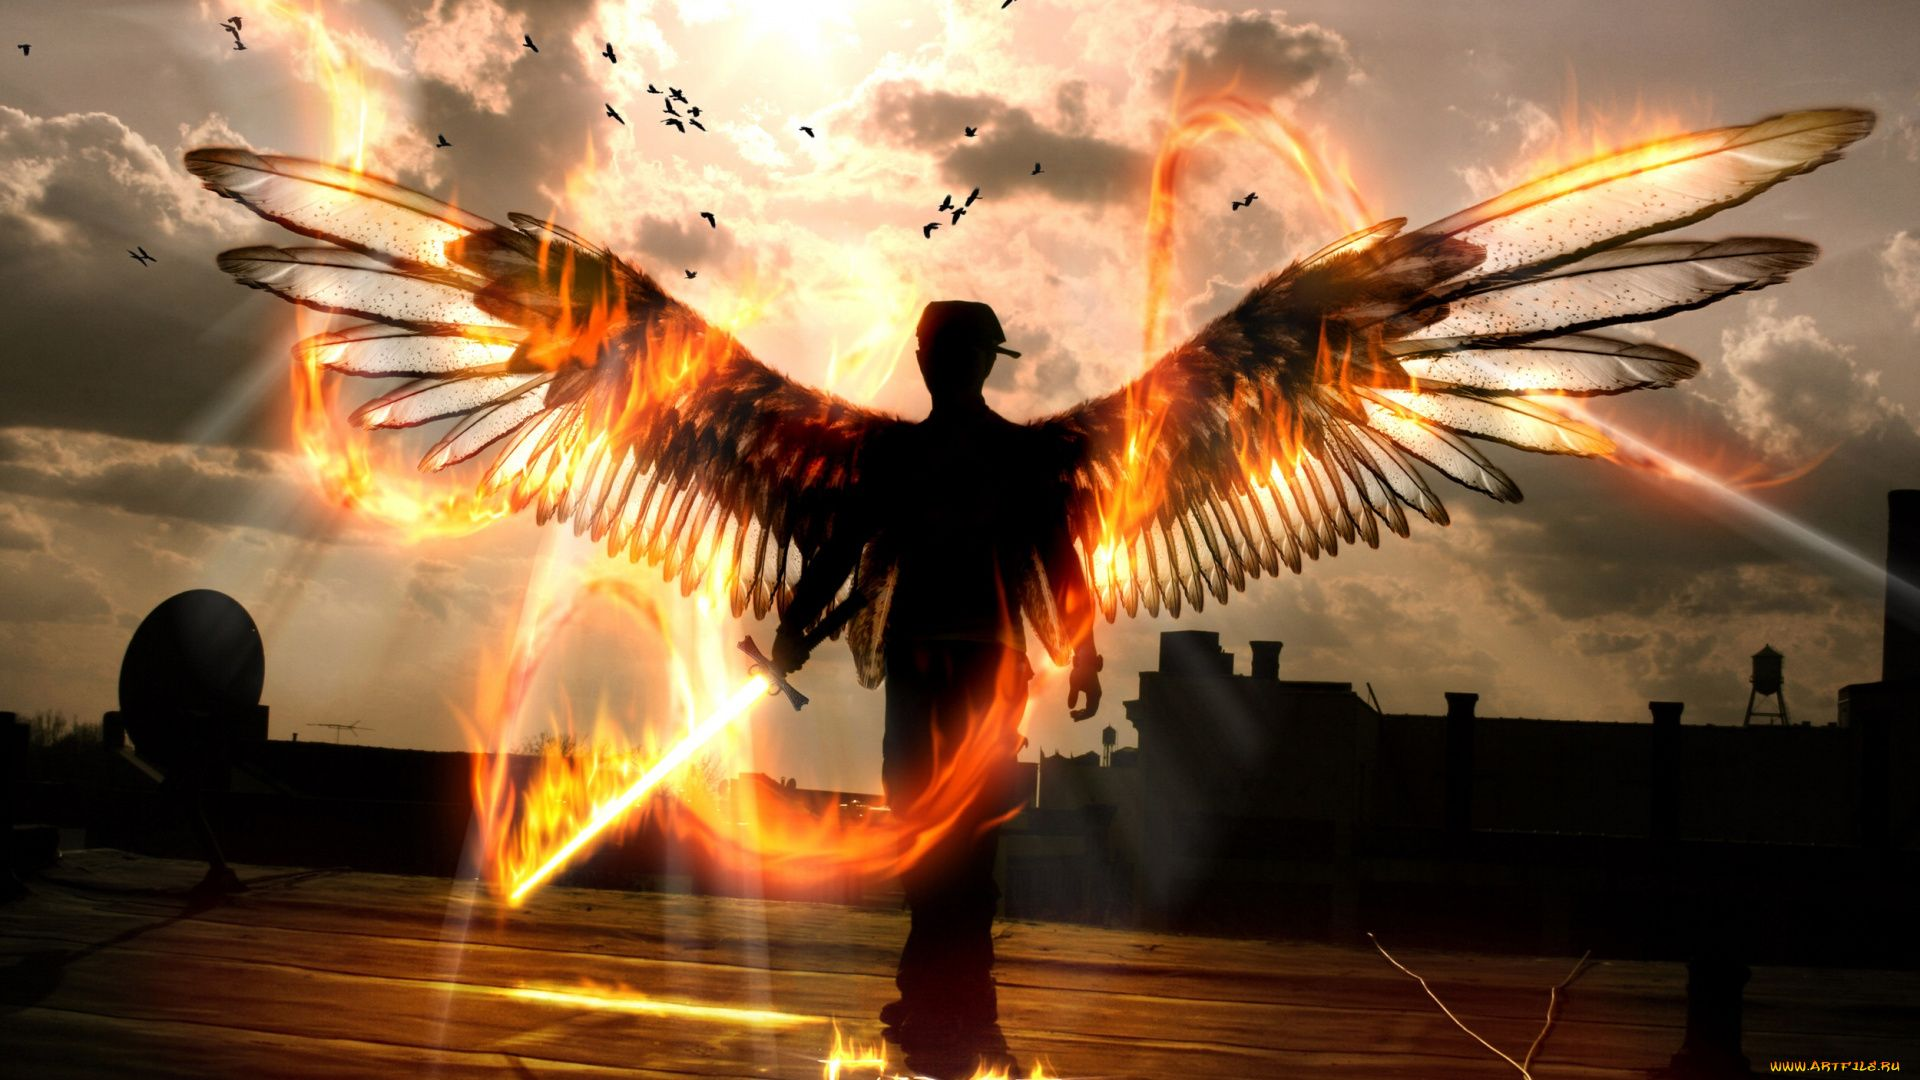 Pictures Of Male Angel With Wings